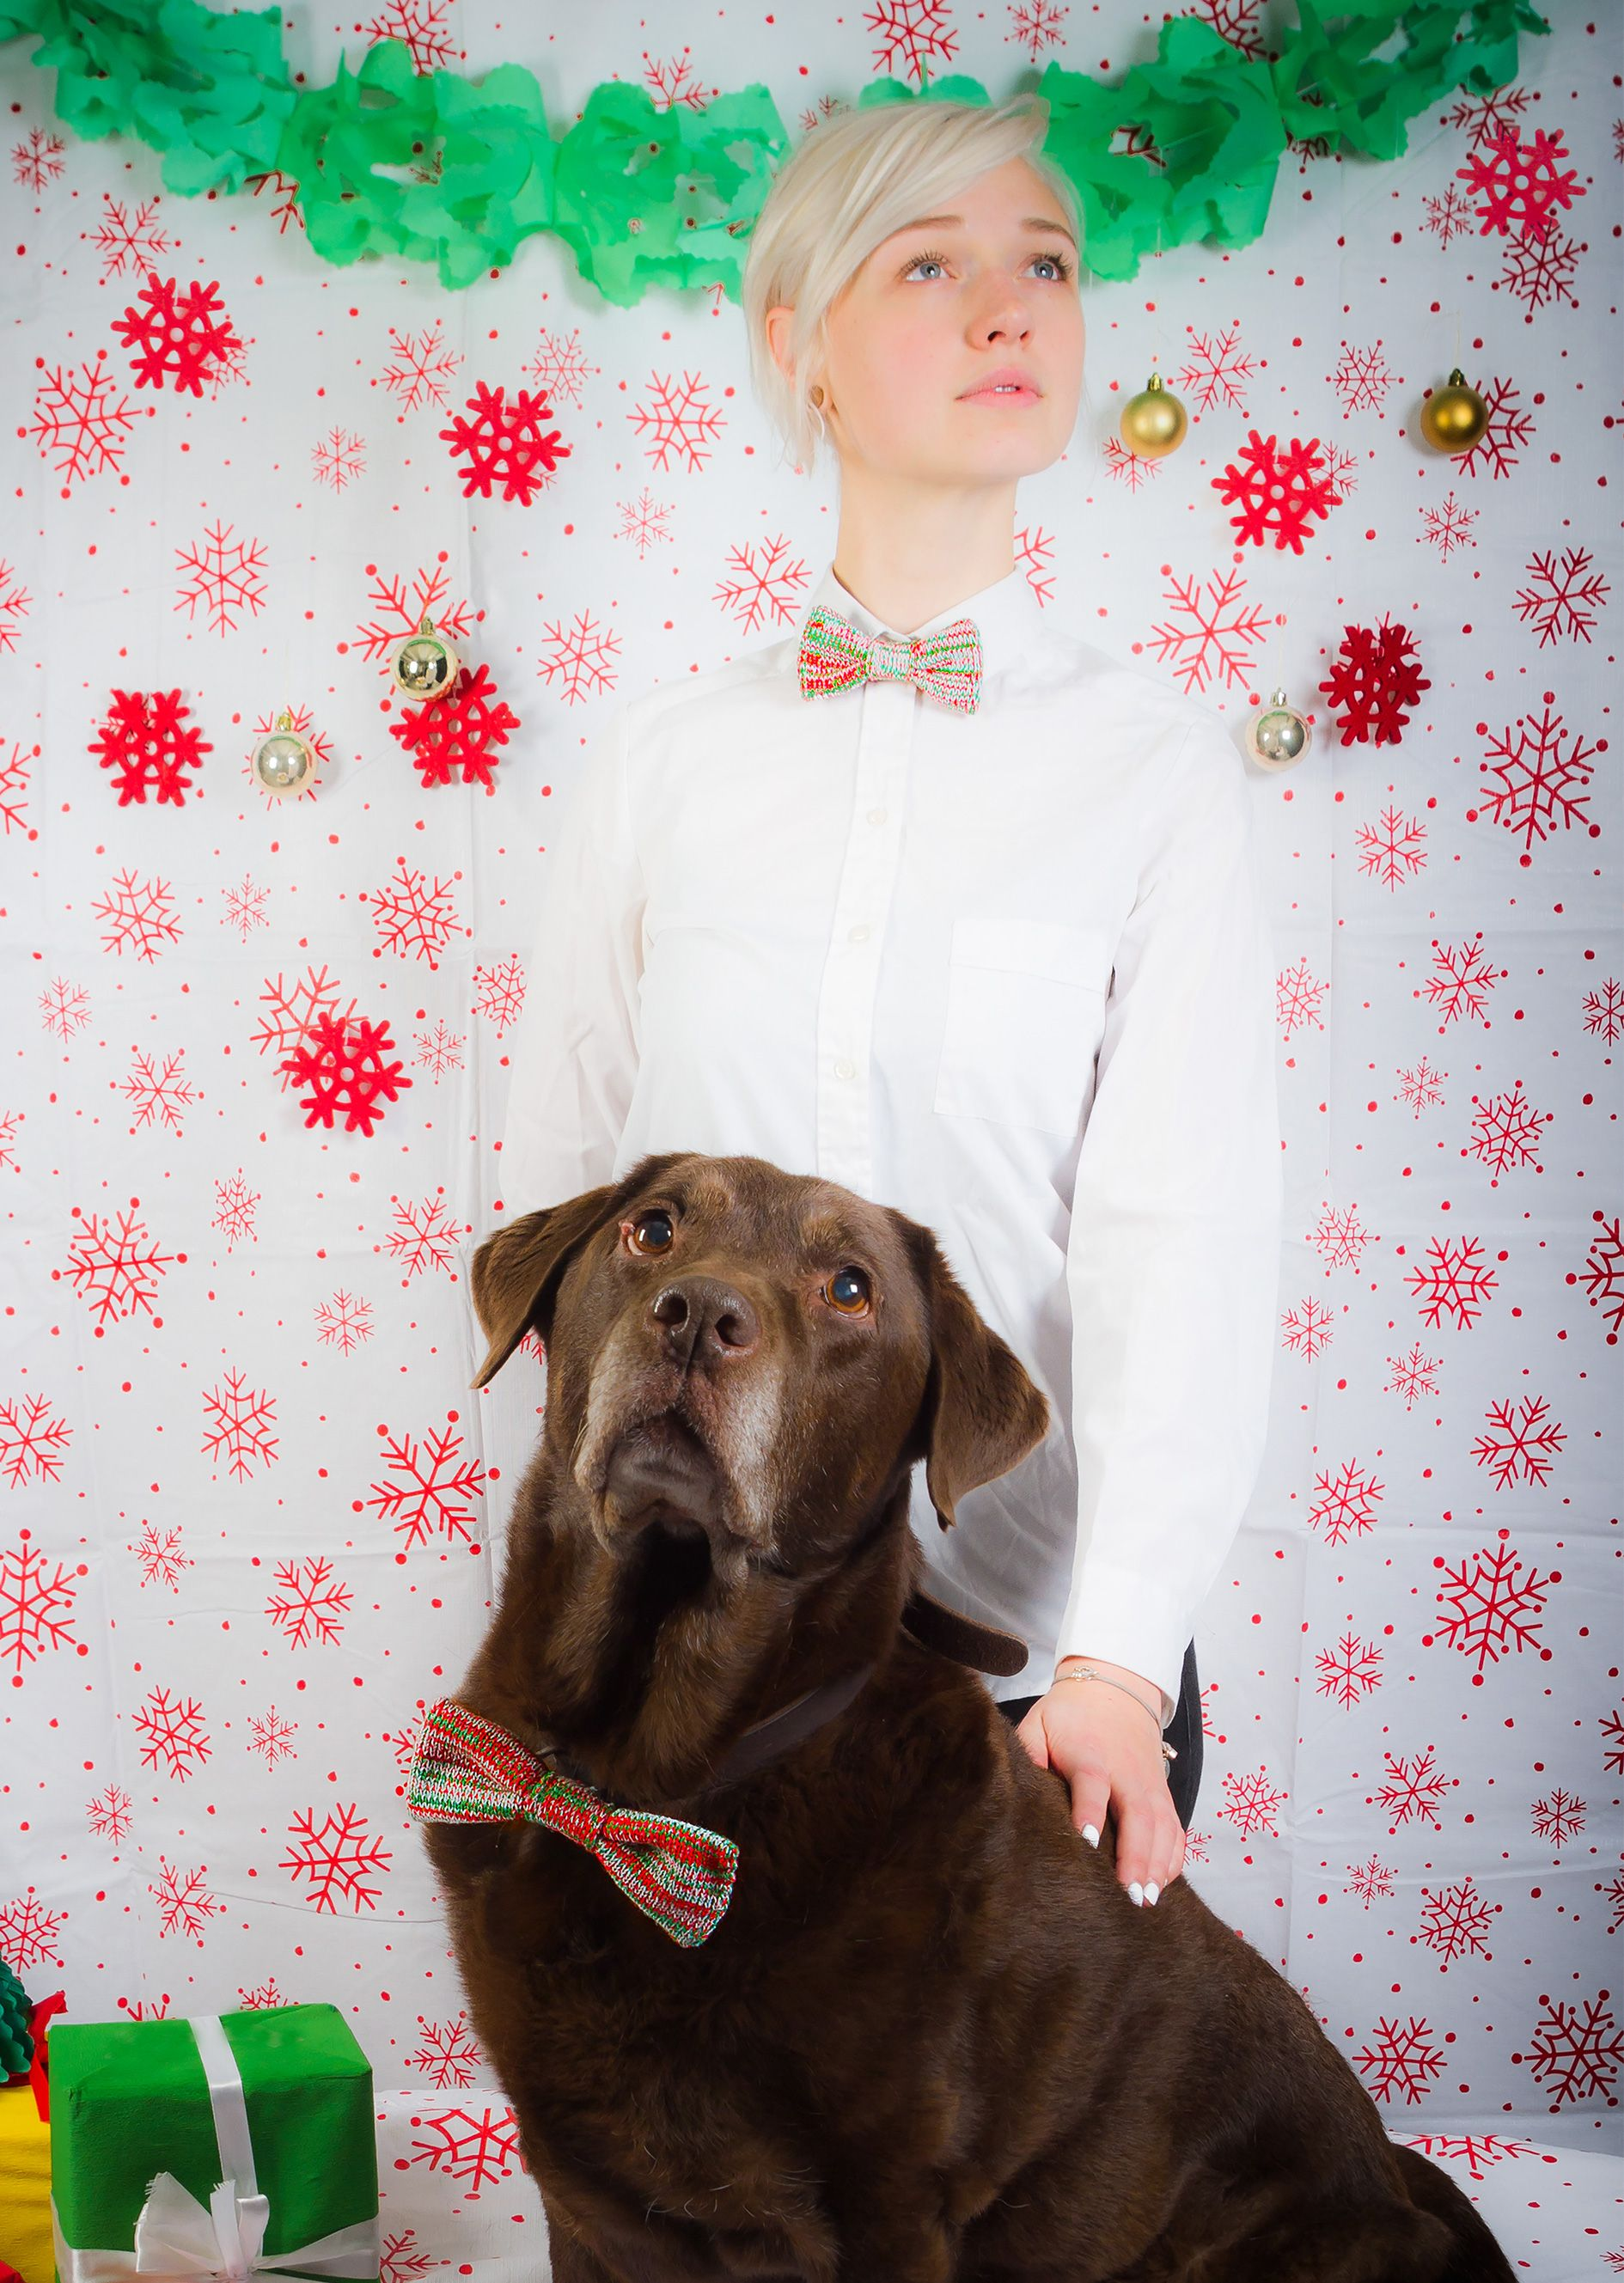 Davide & Lady being Dapper Queens in their The Christmas Edition Bow Tie Set - for People & their Pet! #dapperchristmas #unexpectedknitwear #woolandwater